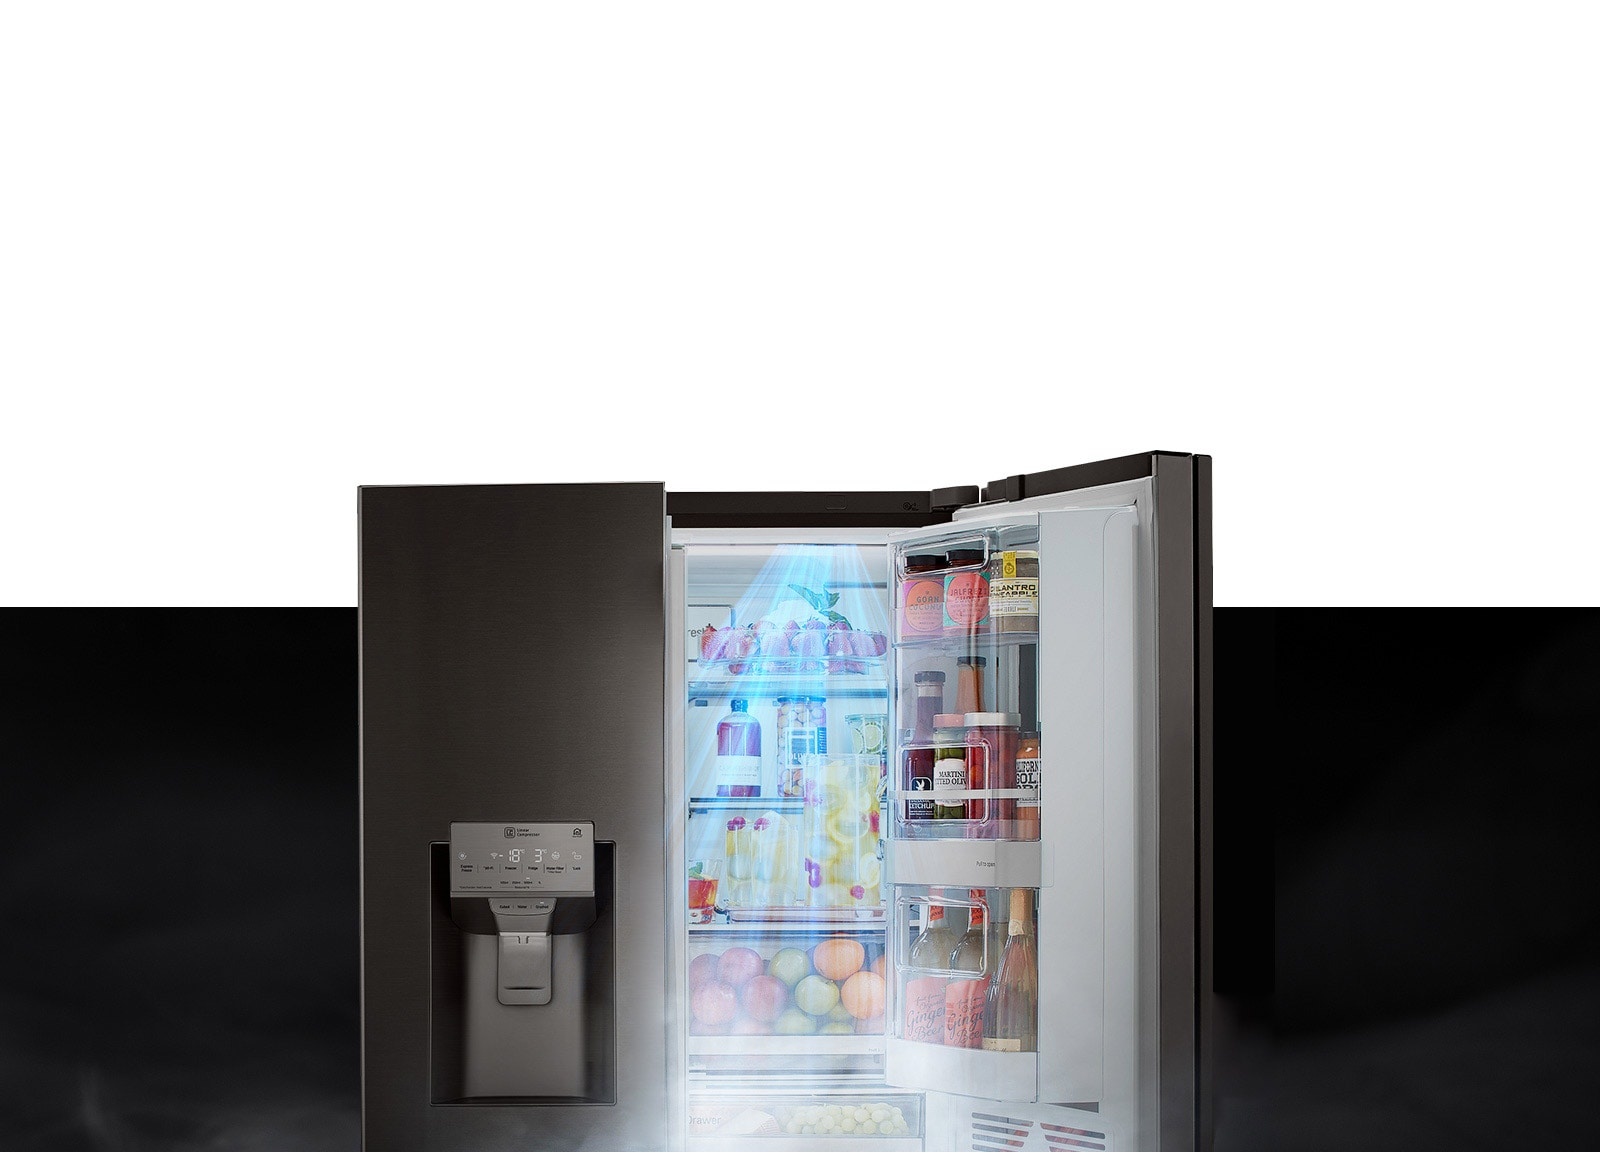 Faster Cooling for Stored Door Items3